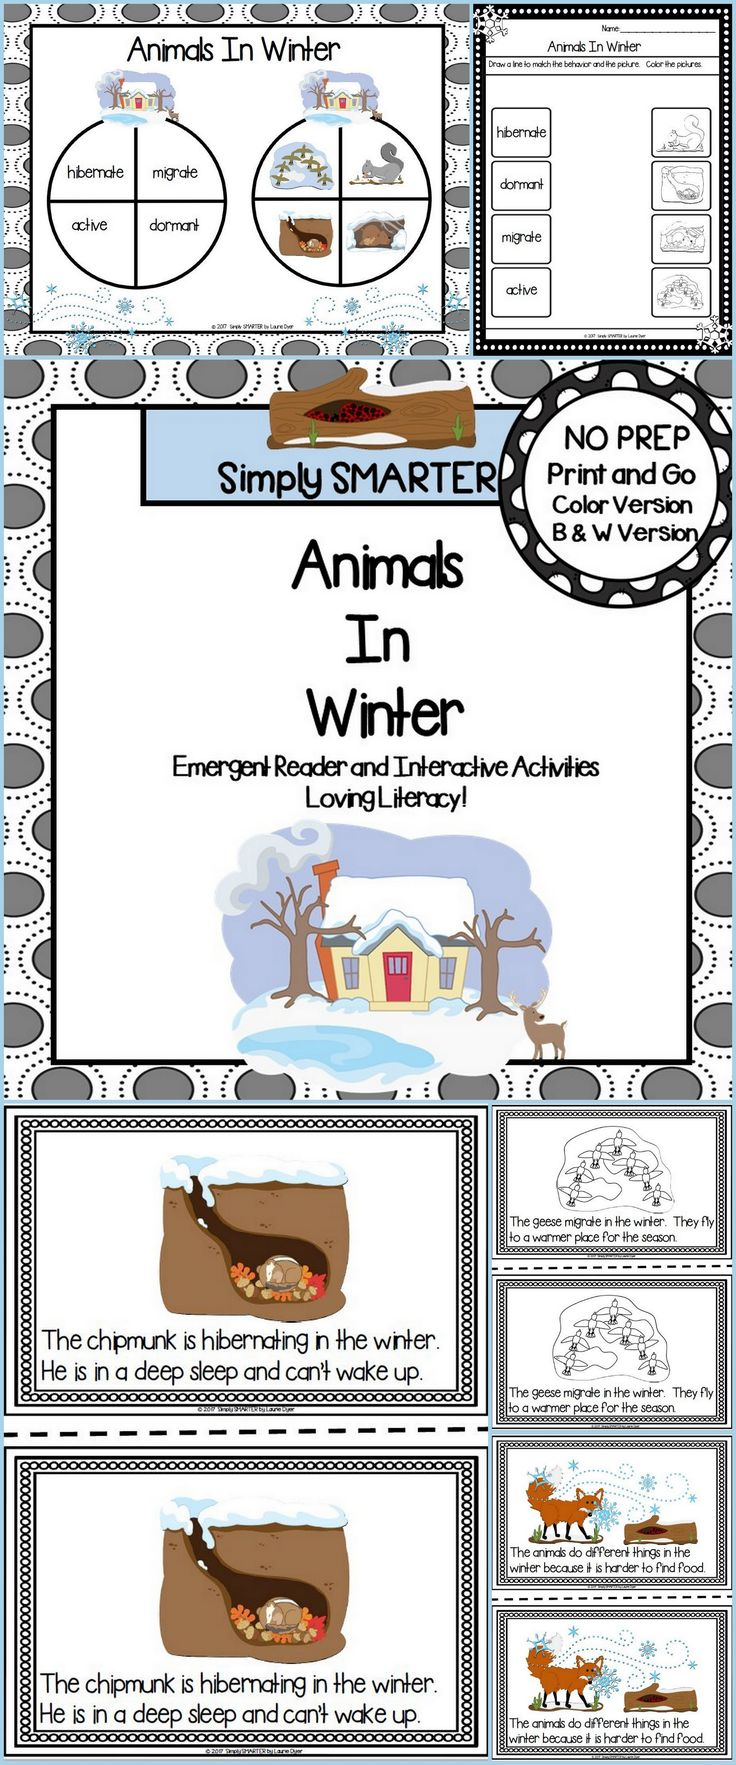 Are you looking for a LOW PREP reading activity for preschool, kindergarten, or first grade? Then use these ANIMALS IN WINTER activities for guided reading, shared reading, independent reading, science, or homework. Children can choose a colored version or black and white version of a 7 page reader. The reader contains two sentences on each page and informs children about the animals in winter. Children will reinforce what they read by completing the response page and by playing the board…